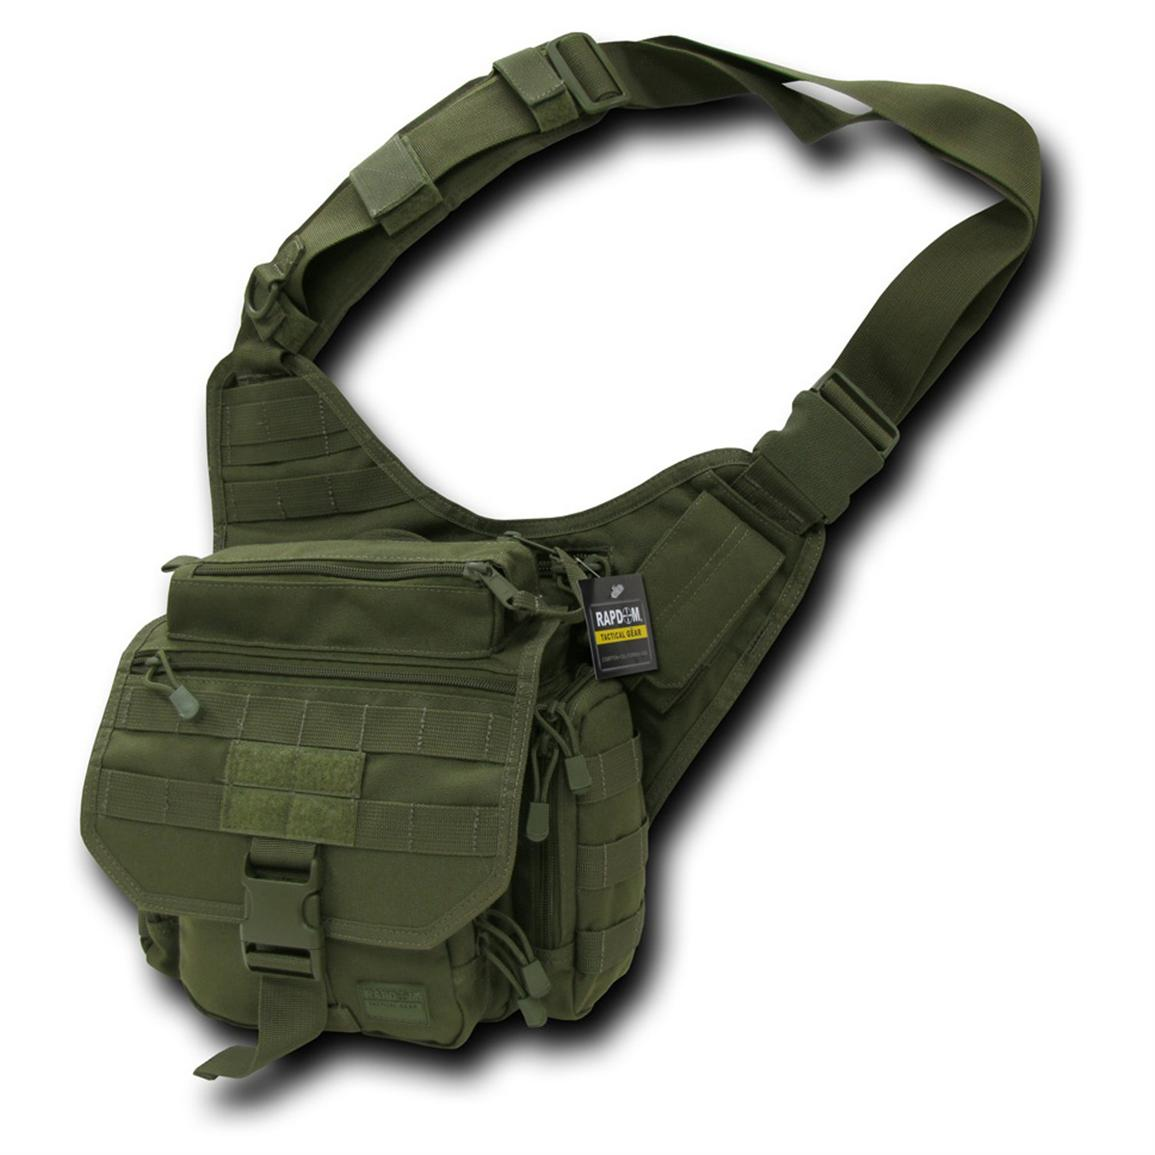 Rapid Dominance Tactical Field Bag, Olive Drab